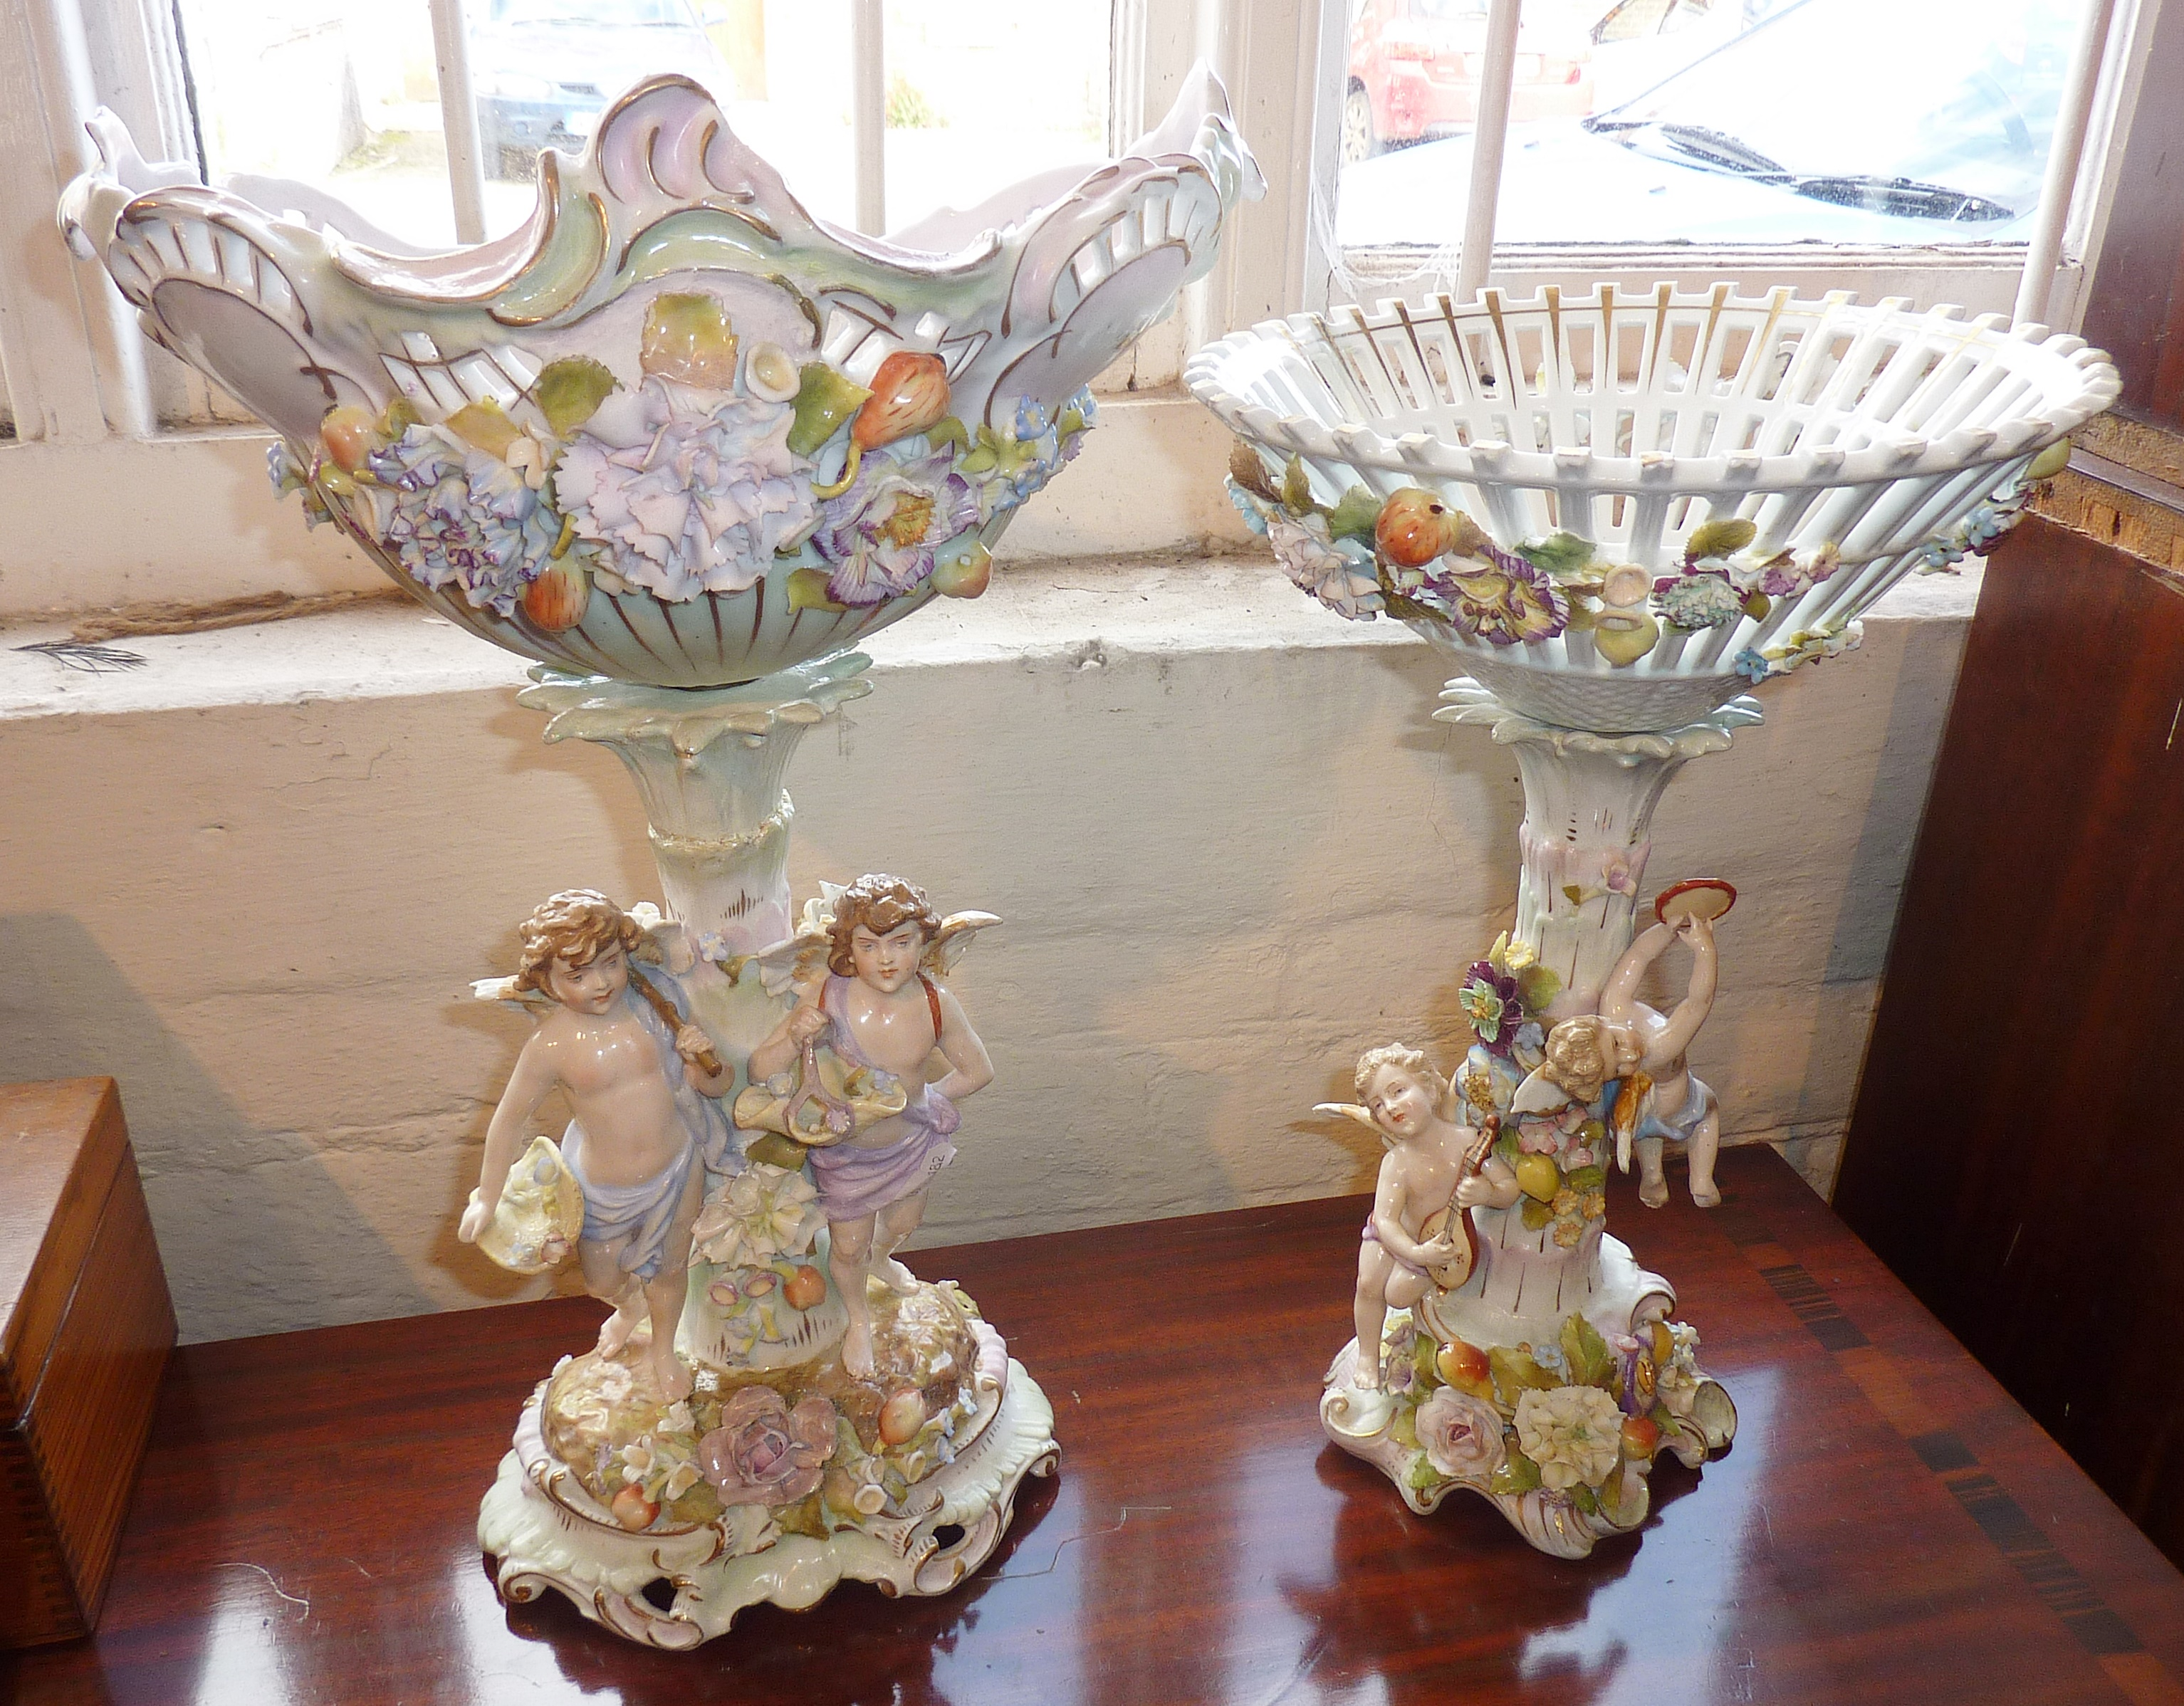 Lot 282 - Austrian or German porcelain figural centrepieces, decorated with cherubs and flowers (both